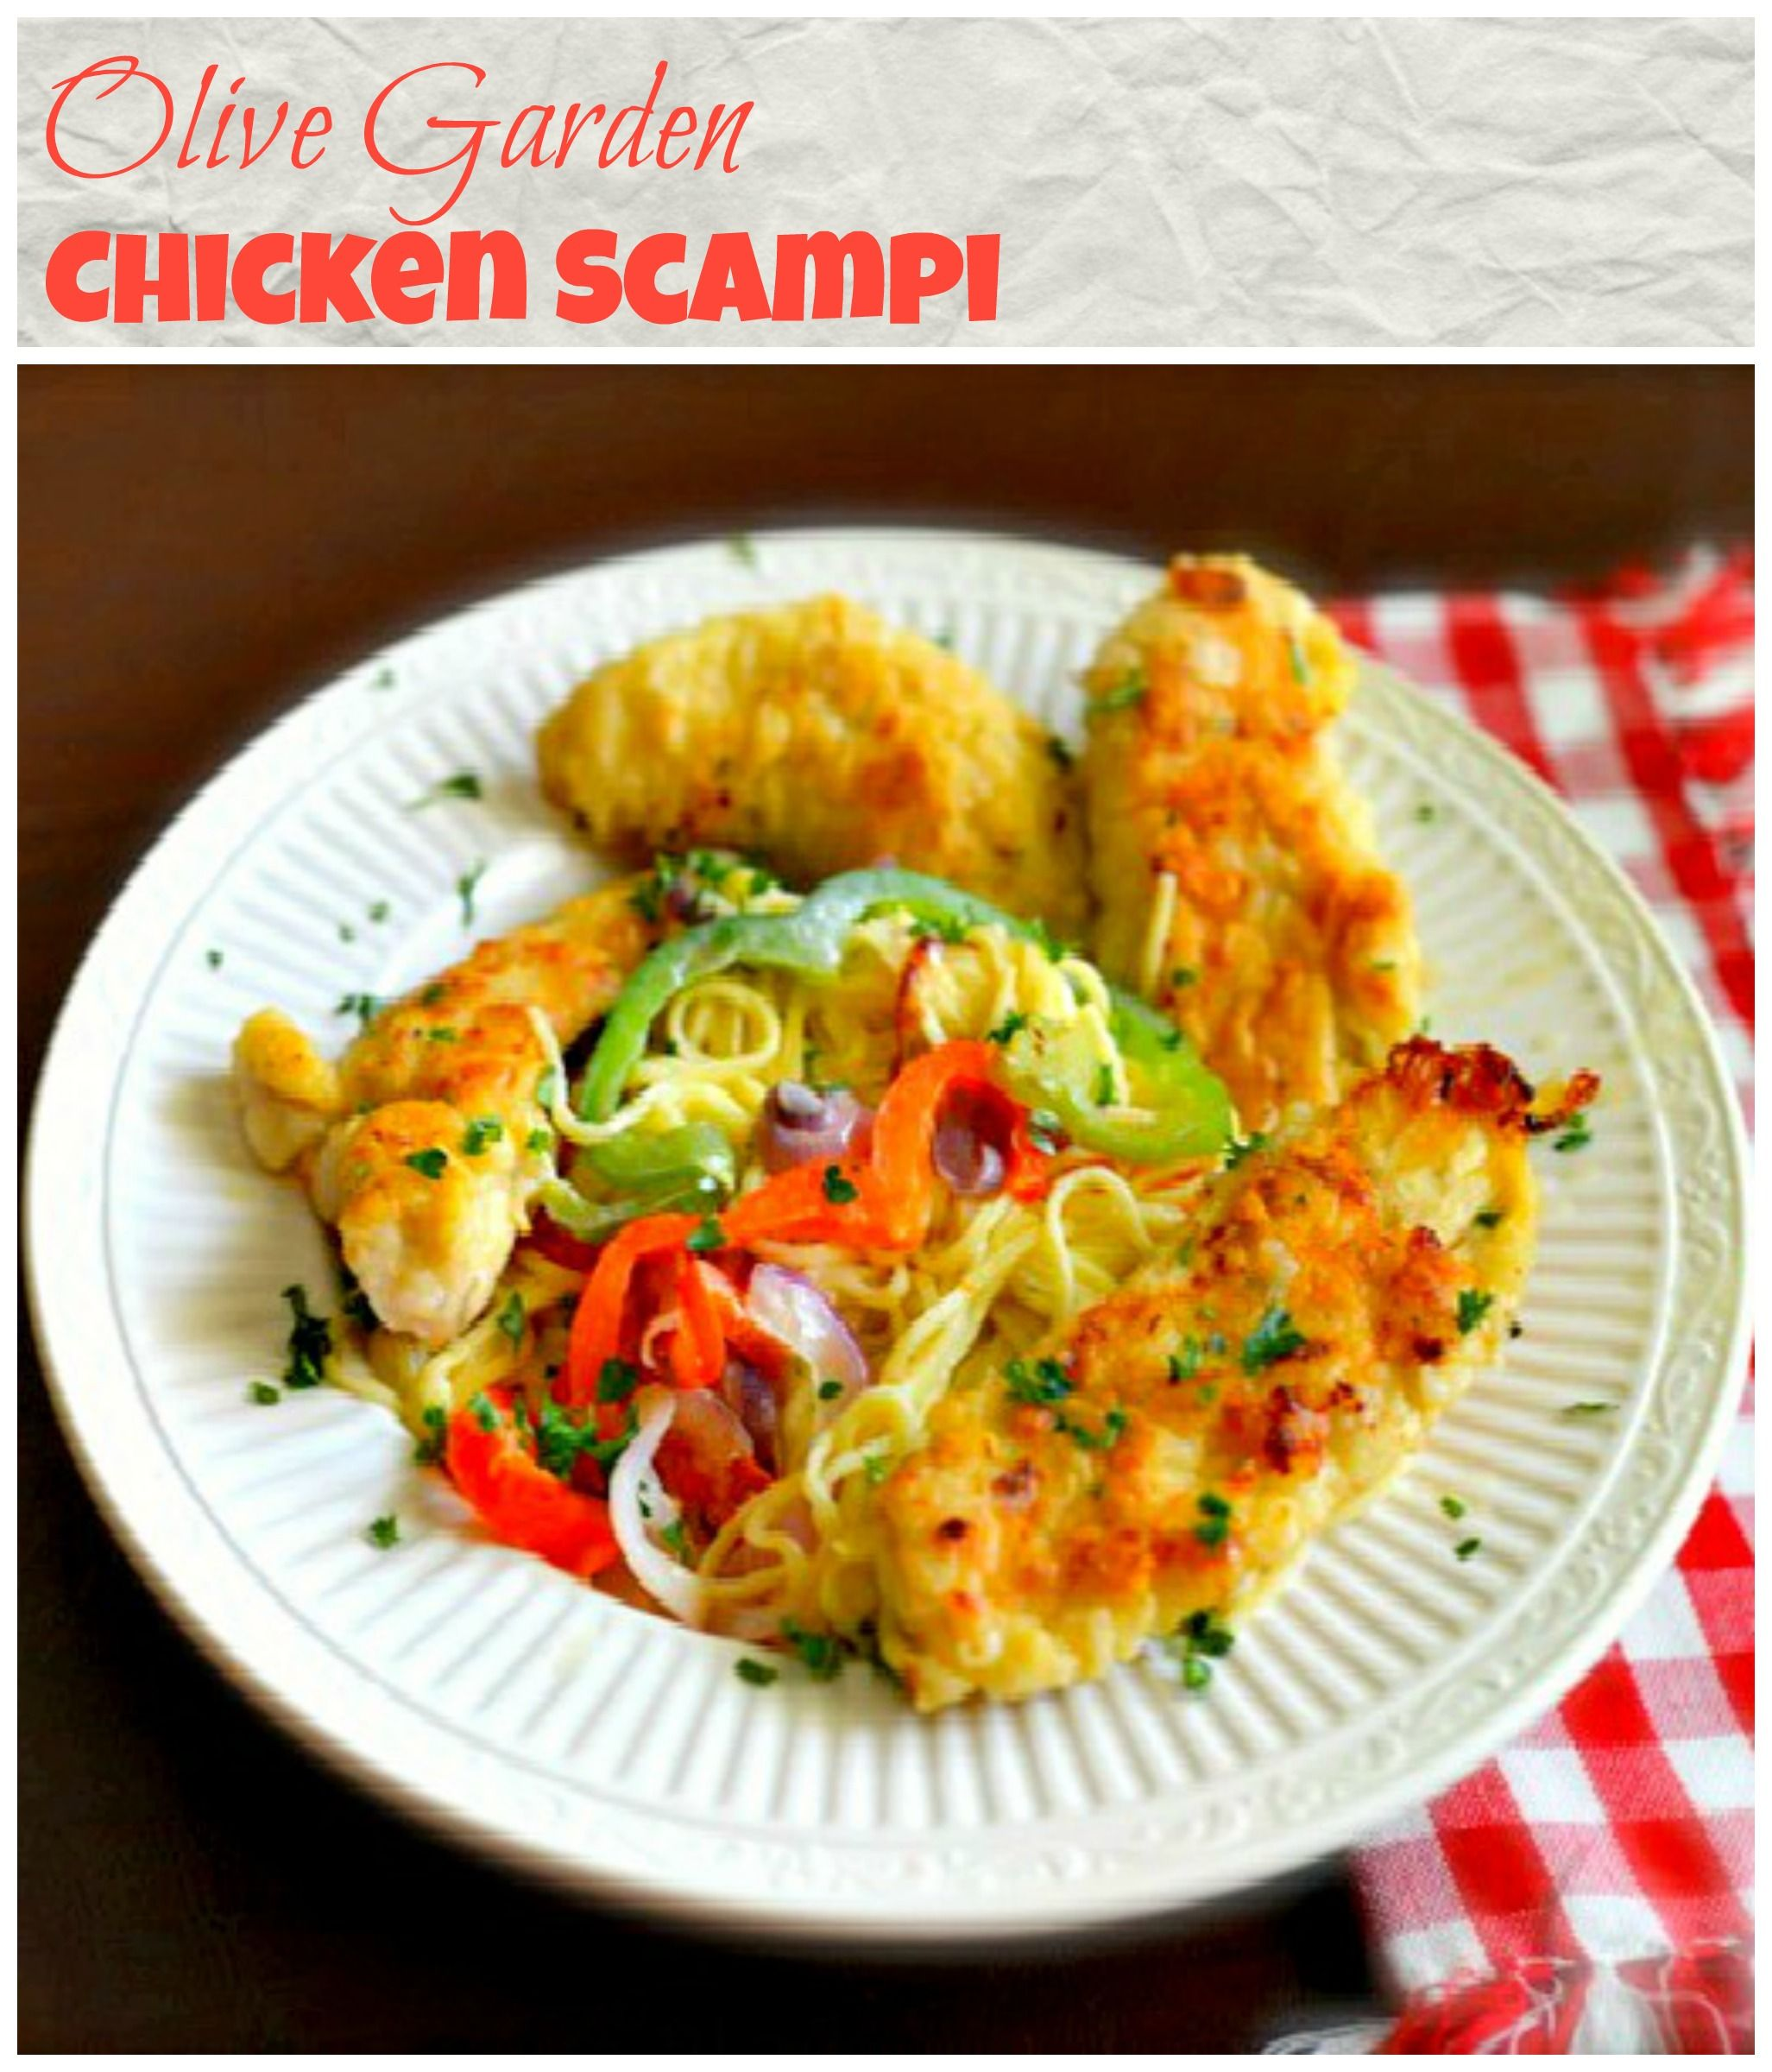 Make Olive Garden's Chicken Scampi just like they do. This